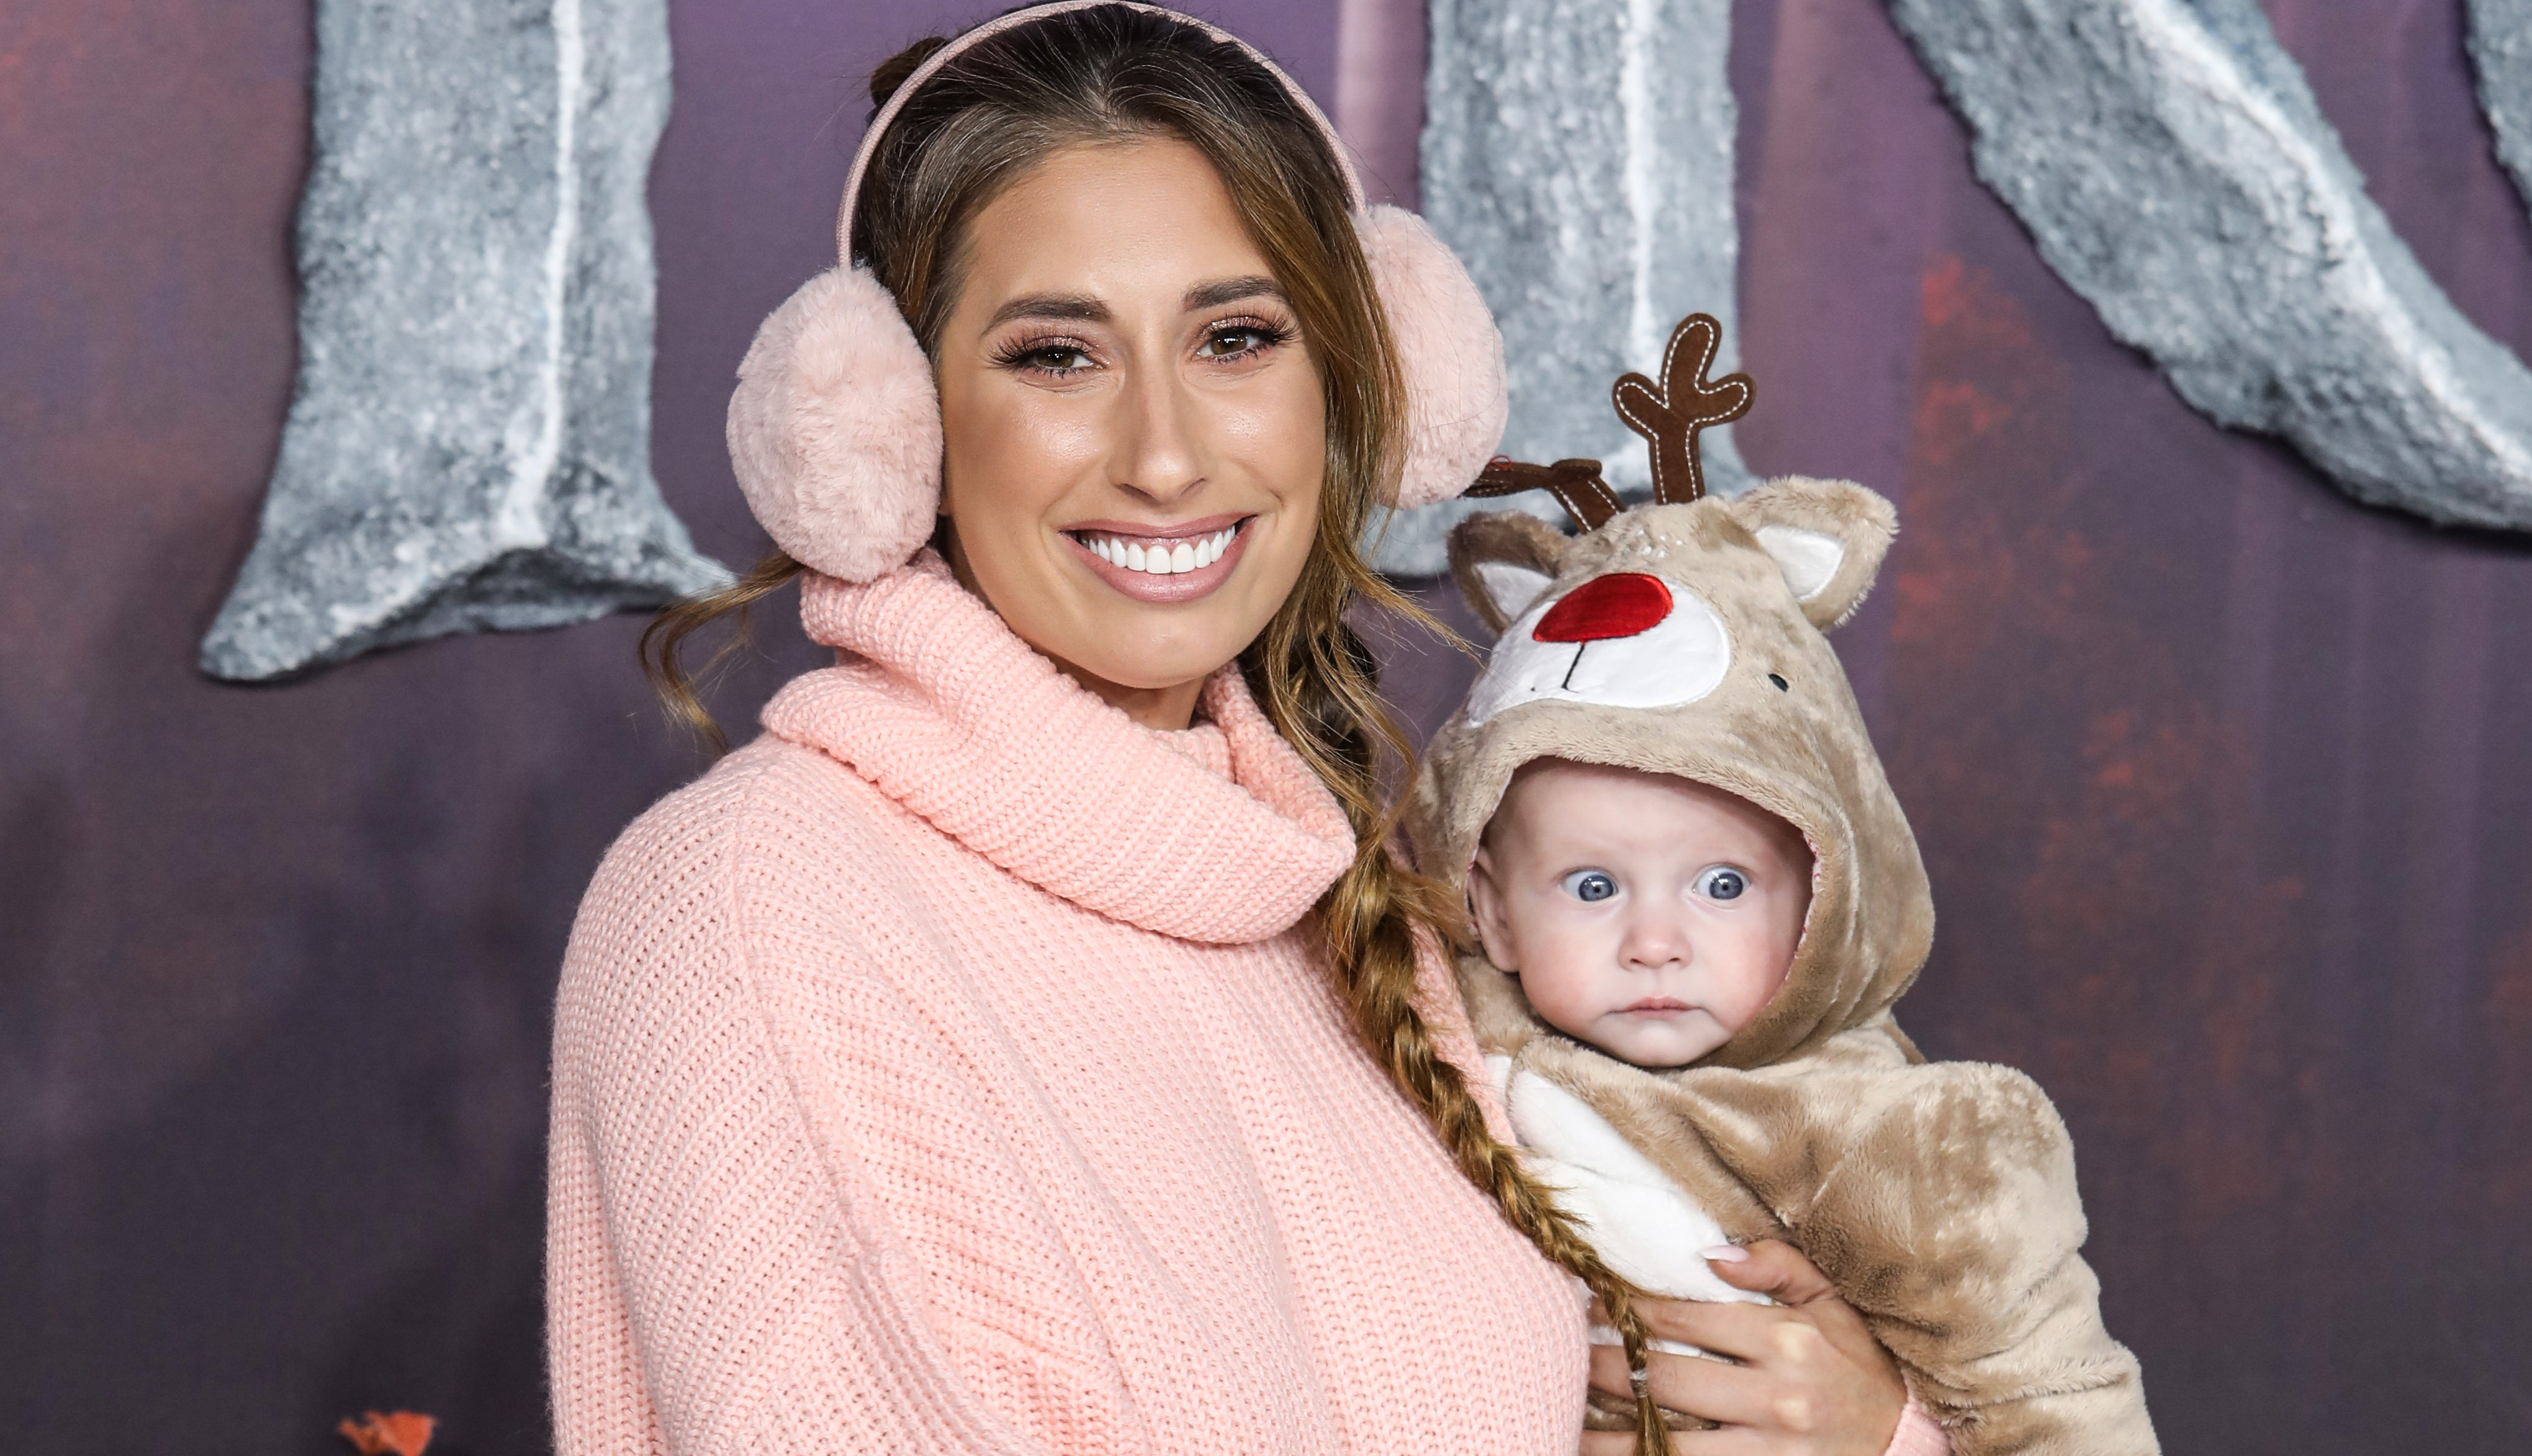 Stacey Solomon shares hilarious video of baby Rex's 'exploding poo' gift